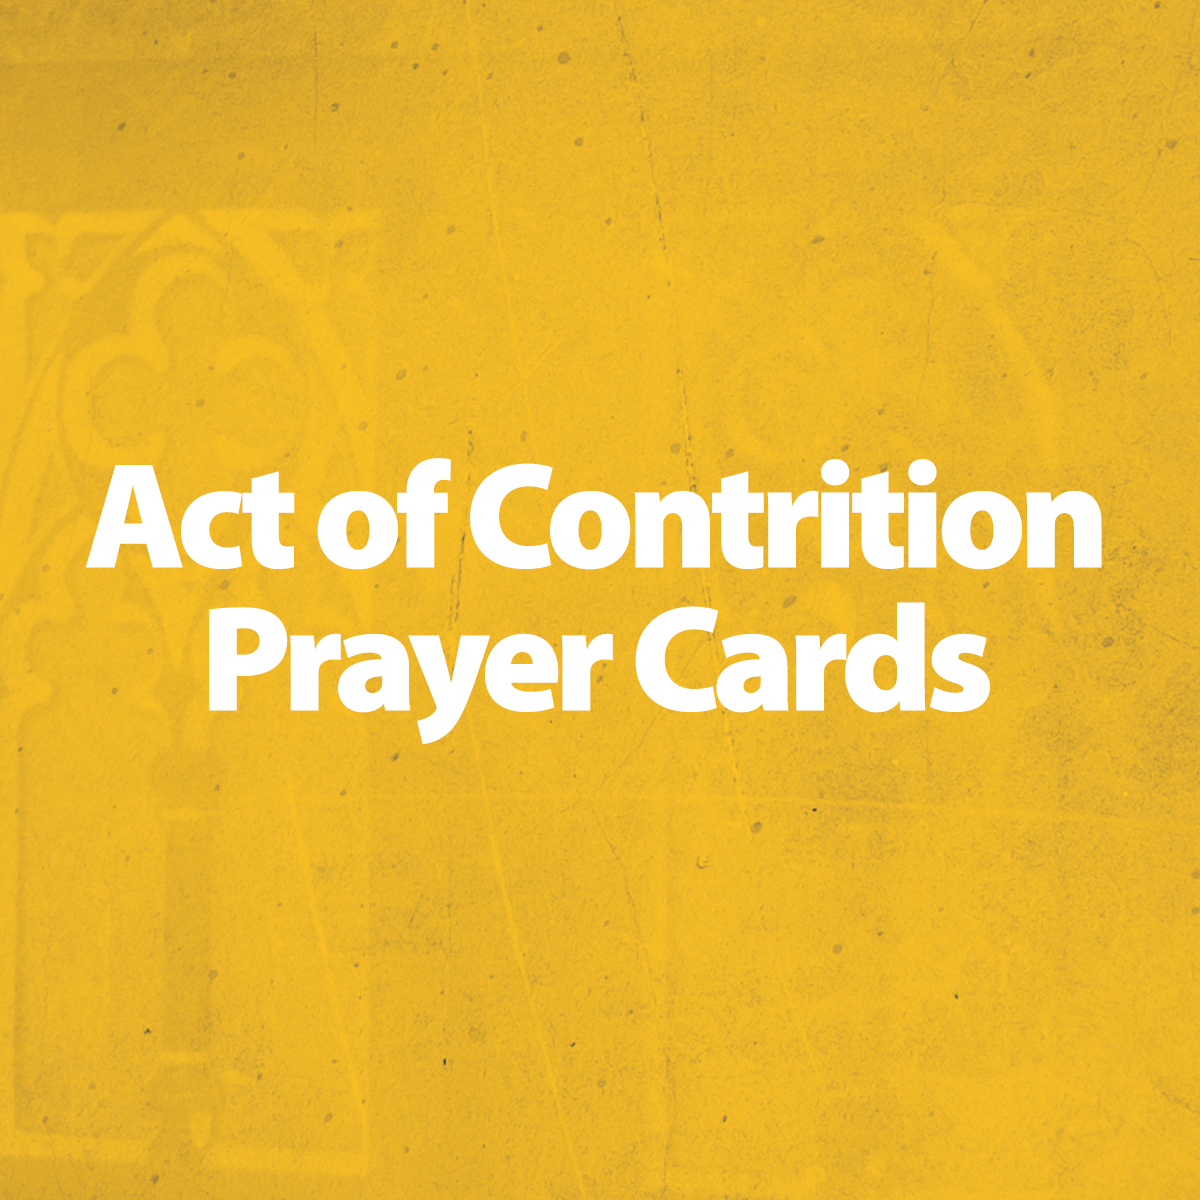 Act of Contrition Prayer Cards